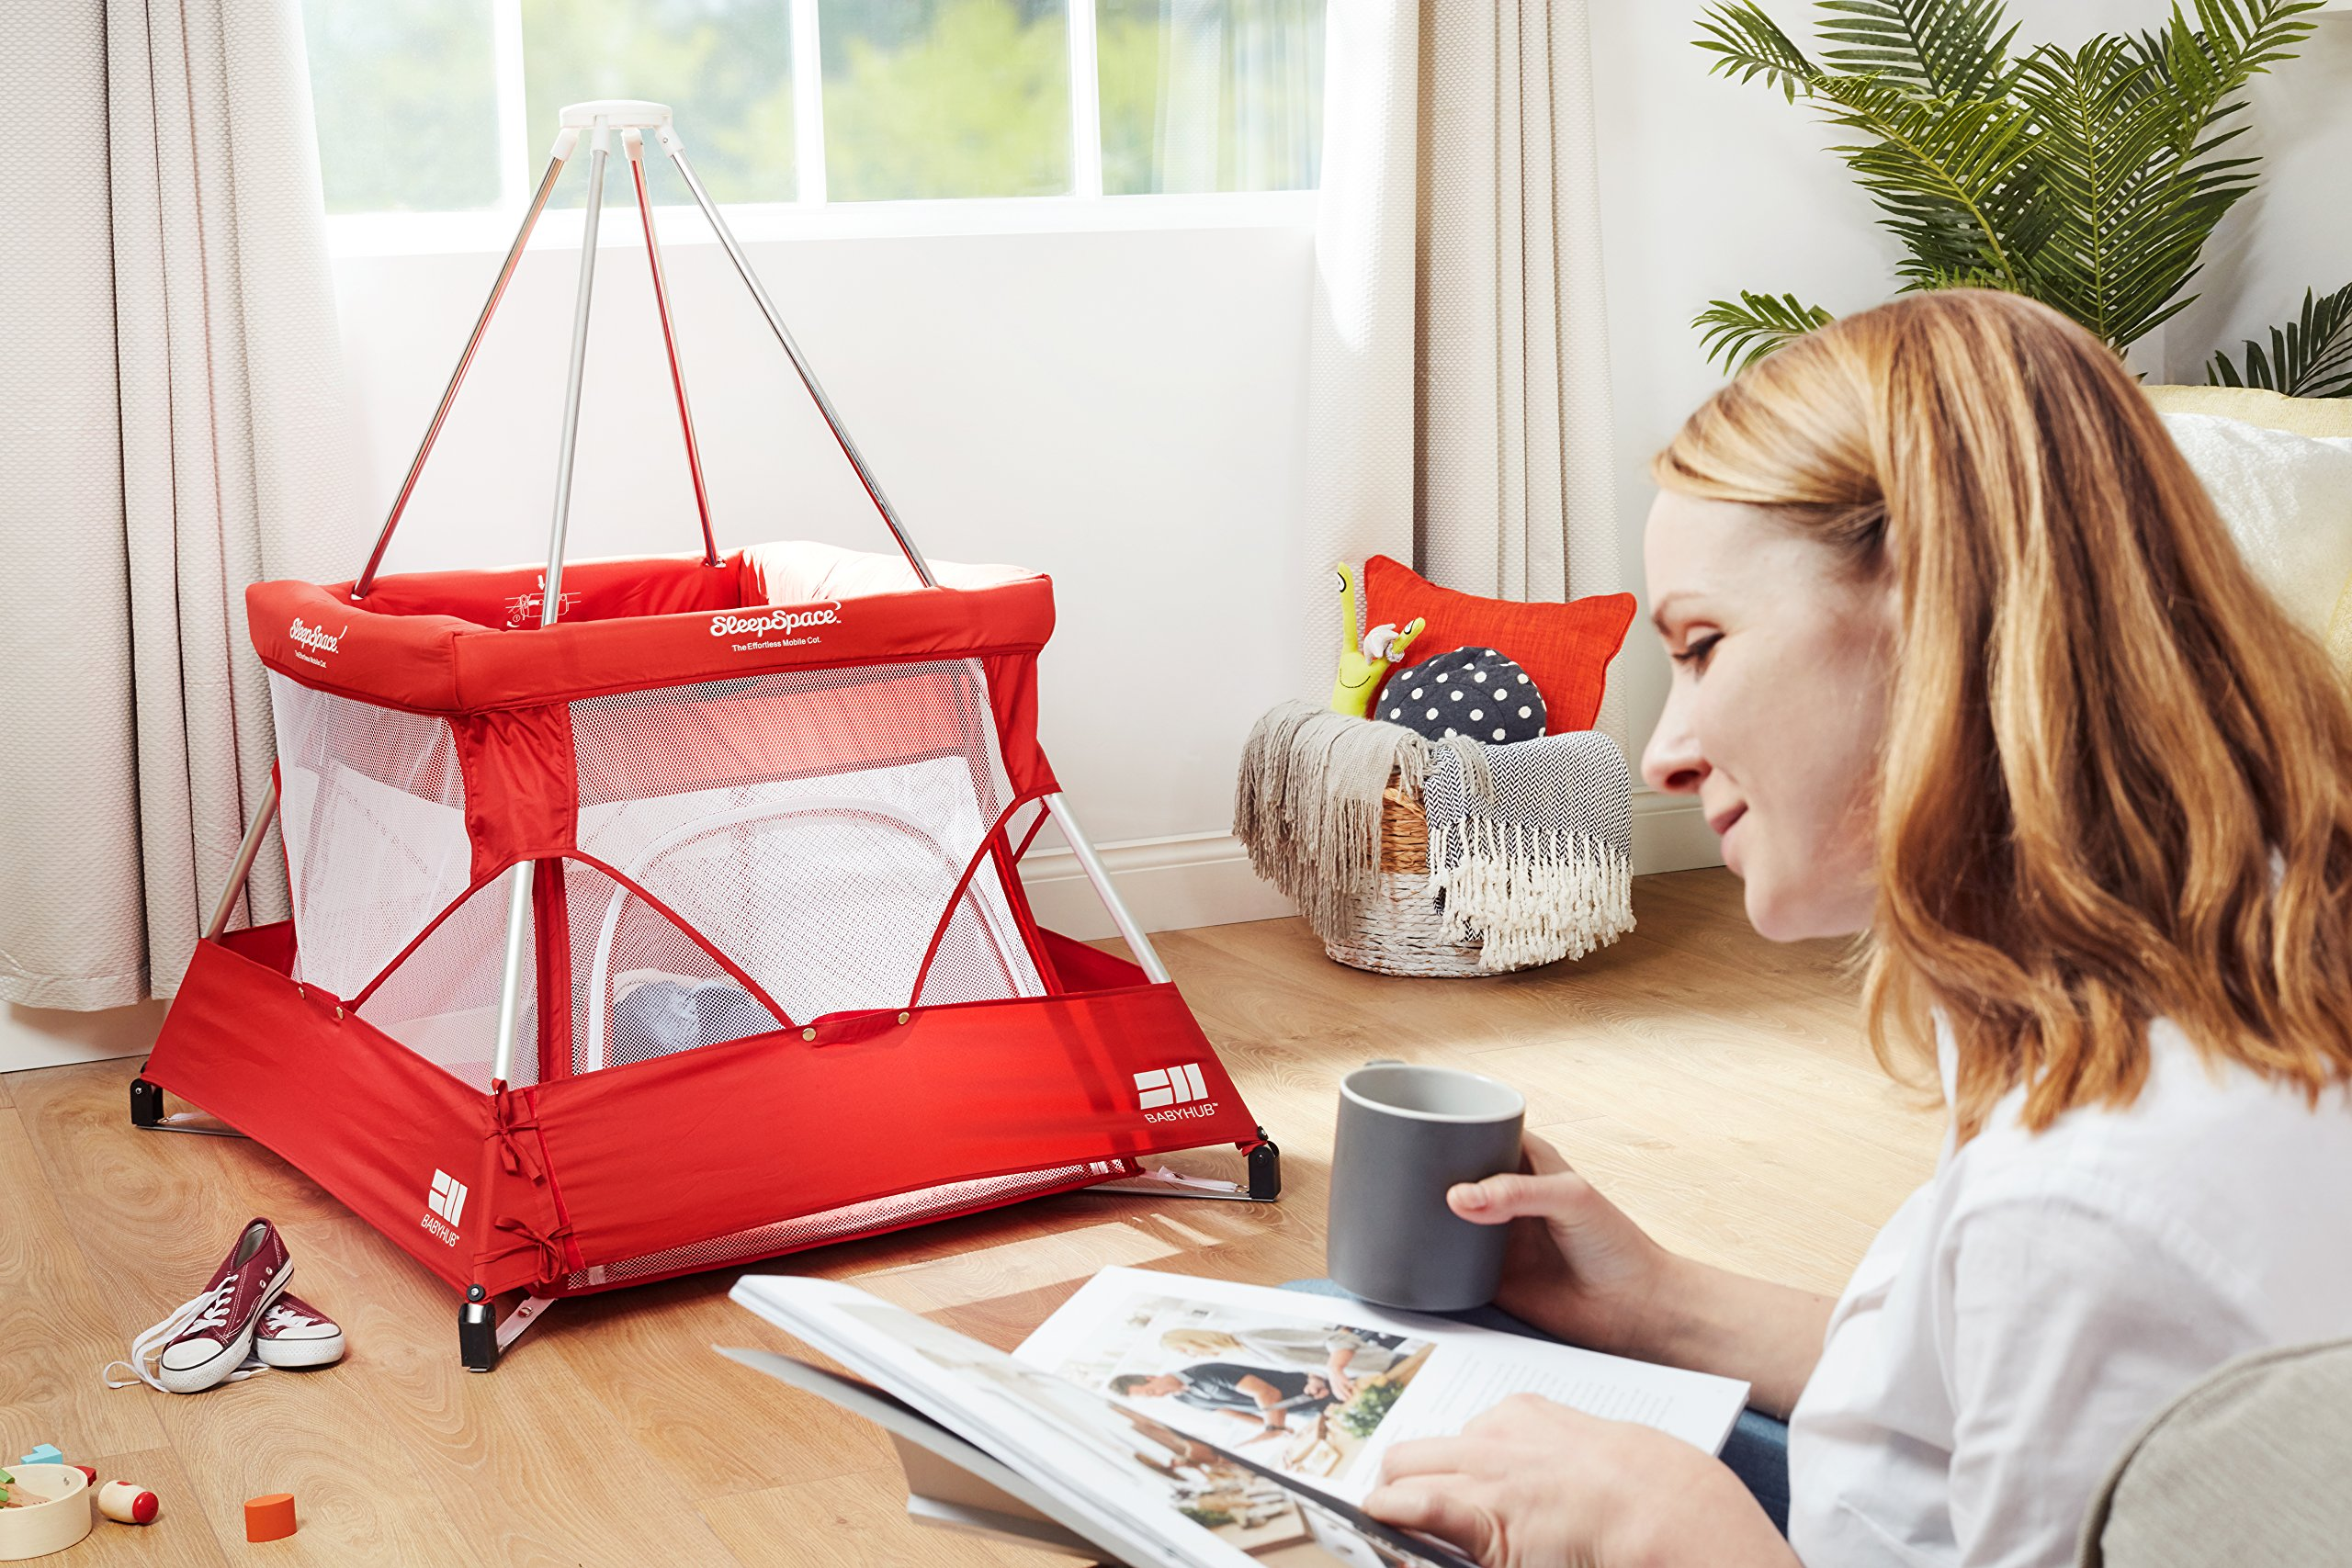 BabyHub SleepSpace Travel Cot with Mosquito Net, Red BabyHub Three cots in one; use as a travel cot, mosquito proof space and reuse as a play tepee Includes extra mosquito net cover that can be securely in place Can be set up and moved even while holding a baby 5